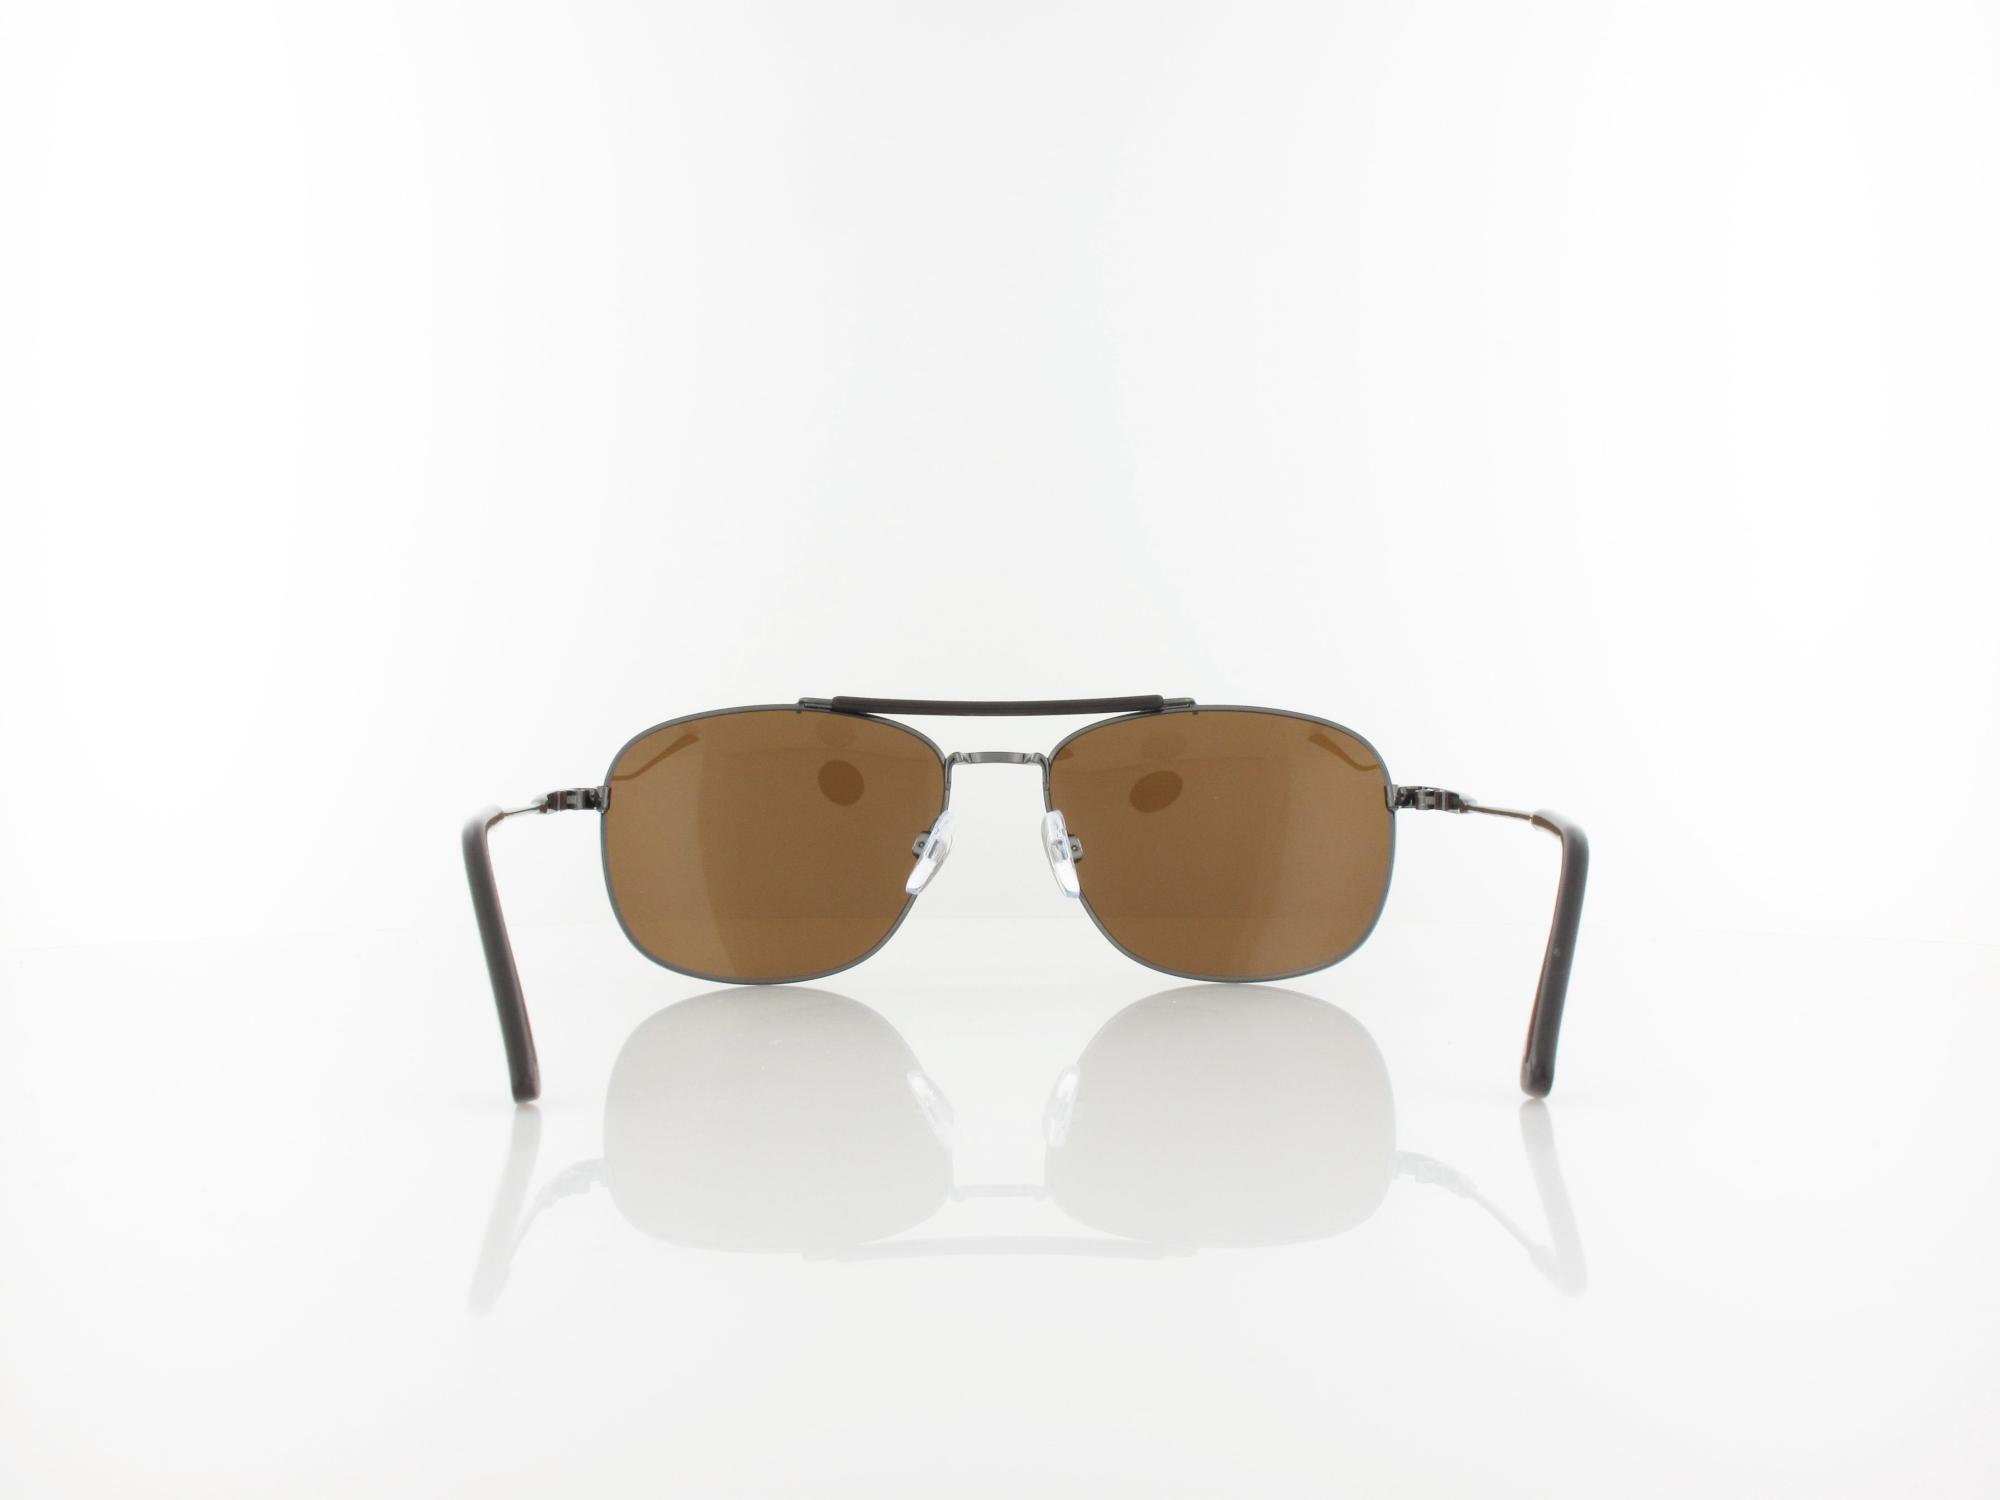 HIS polarized | HPS84104-4 57 | dark gun / brown polarized